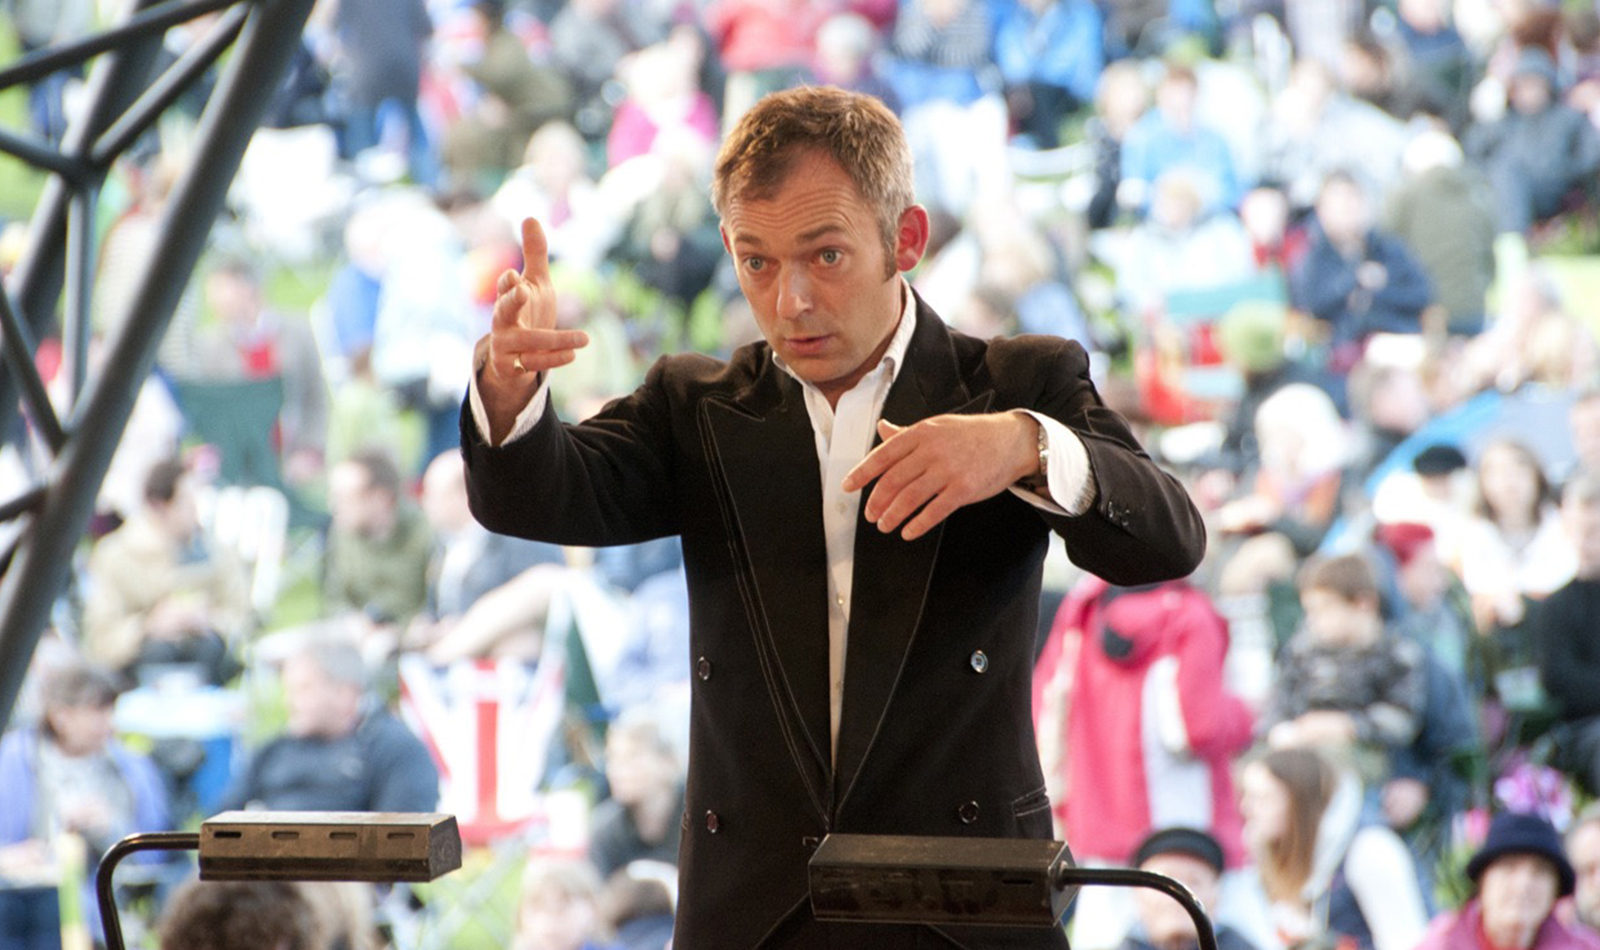 Charles Hazlewood conducting, a blurred crowd in a field in the foreground